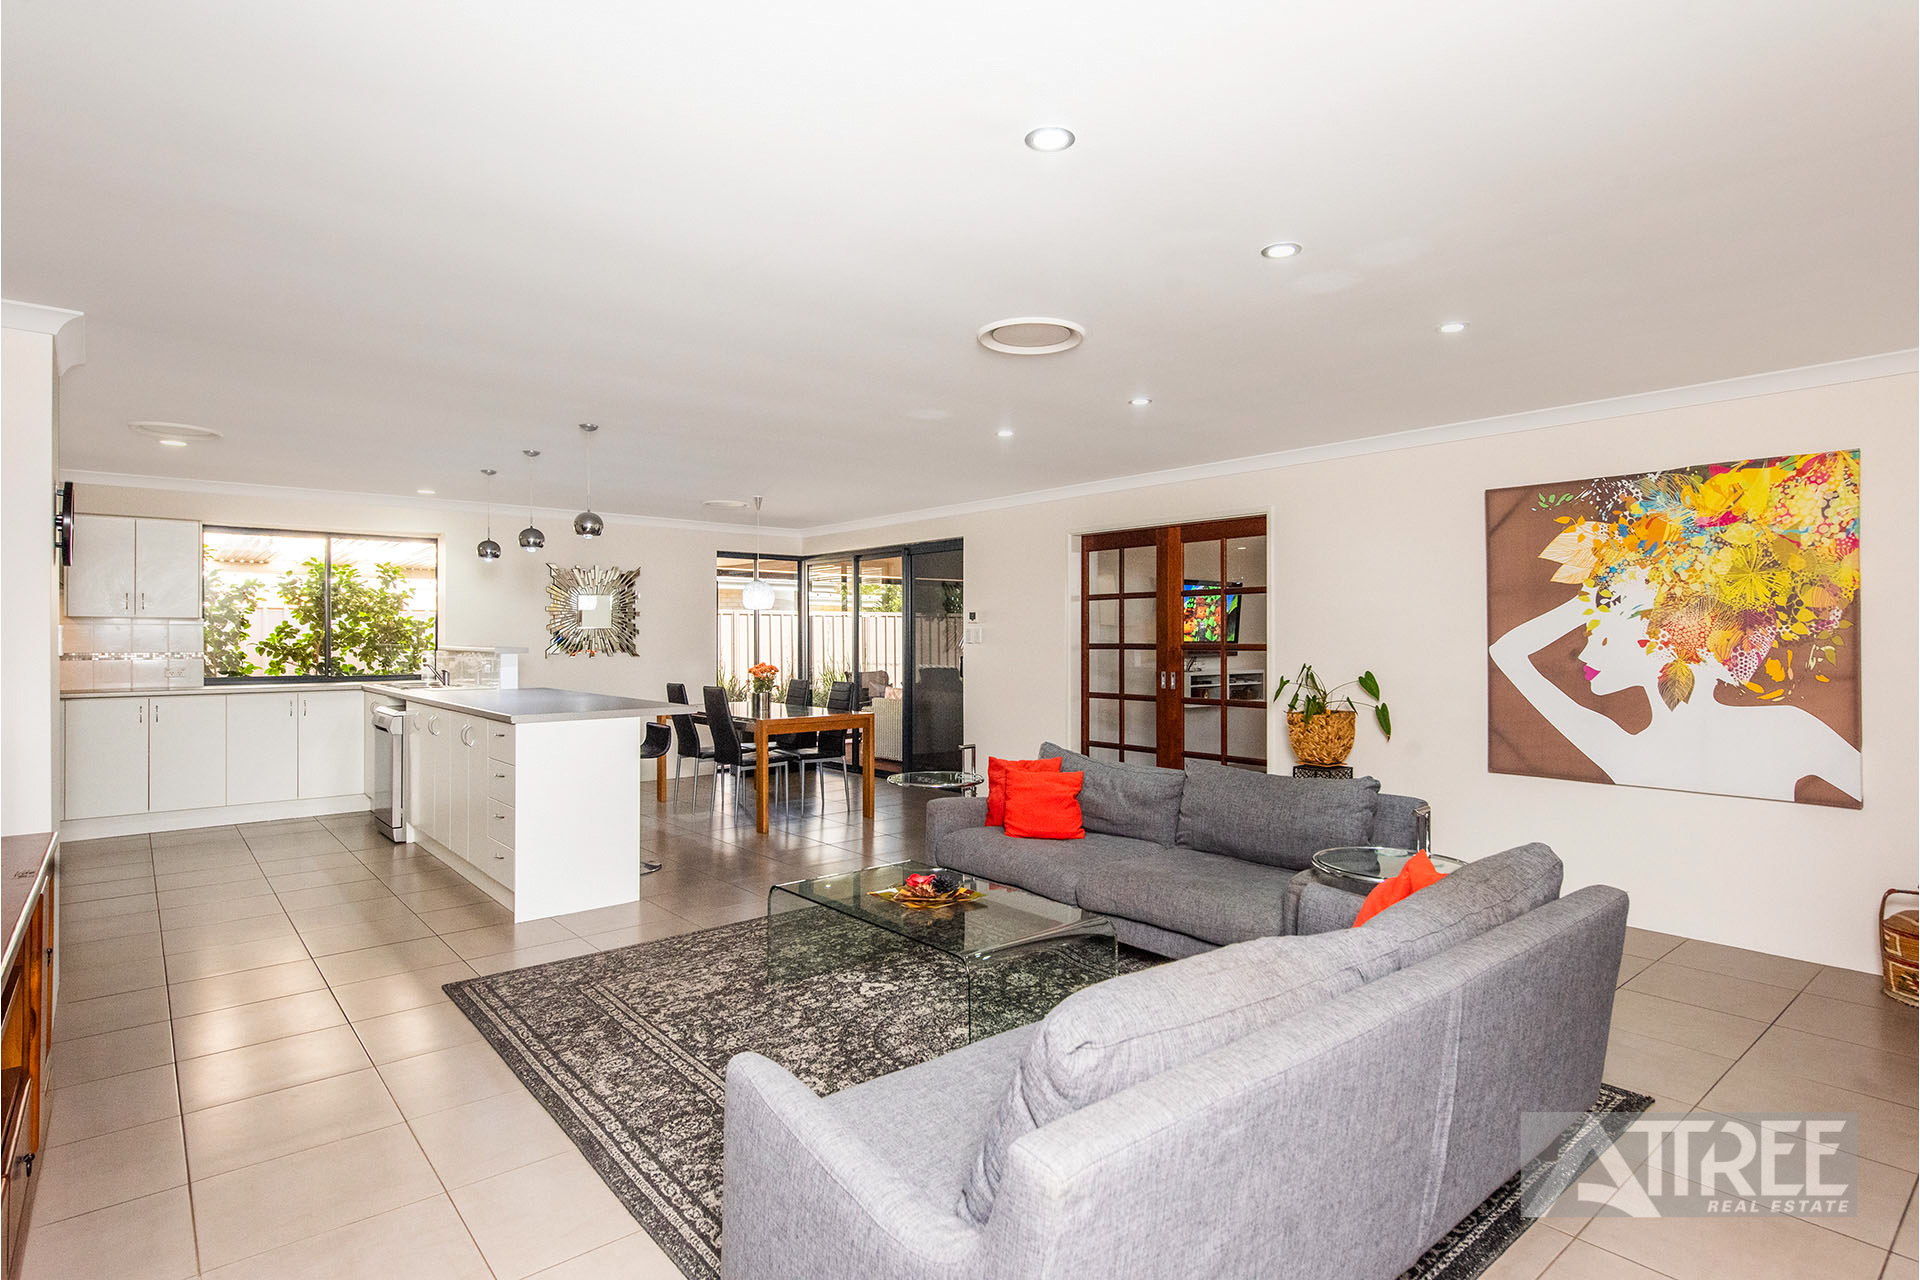 Property for sale in HARRISDALE, 33 Oakleigh Pass : Attree Real Estate